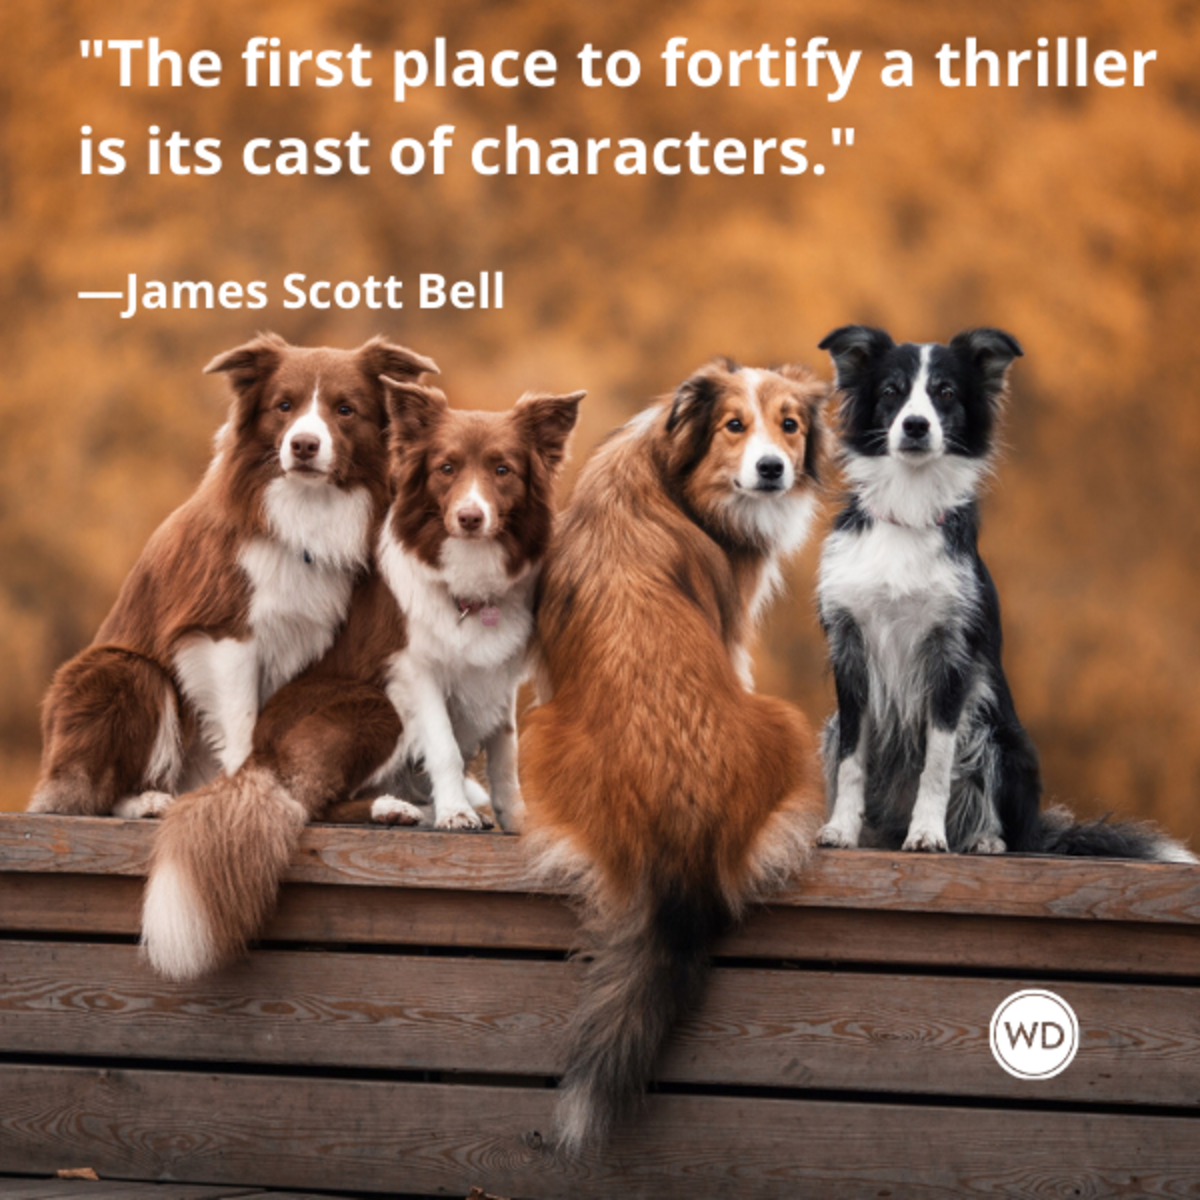 james_scott_bell_quotes_the_first_place_to_fortify_a_thriller_is_its_cast_of_characters_writing_advice_with_dogs